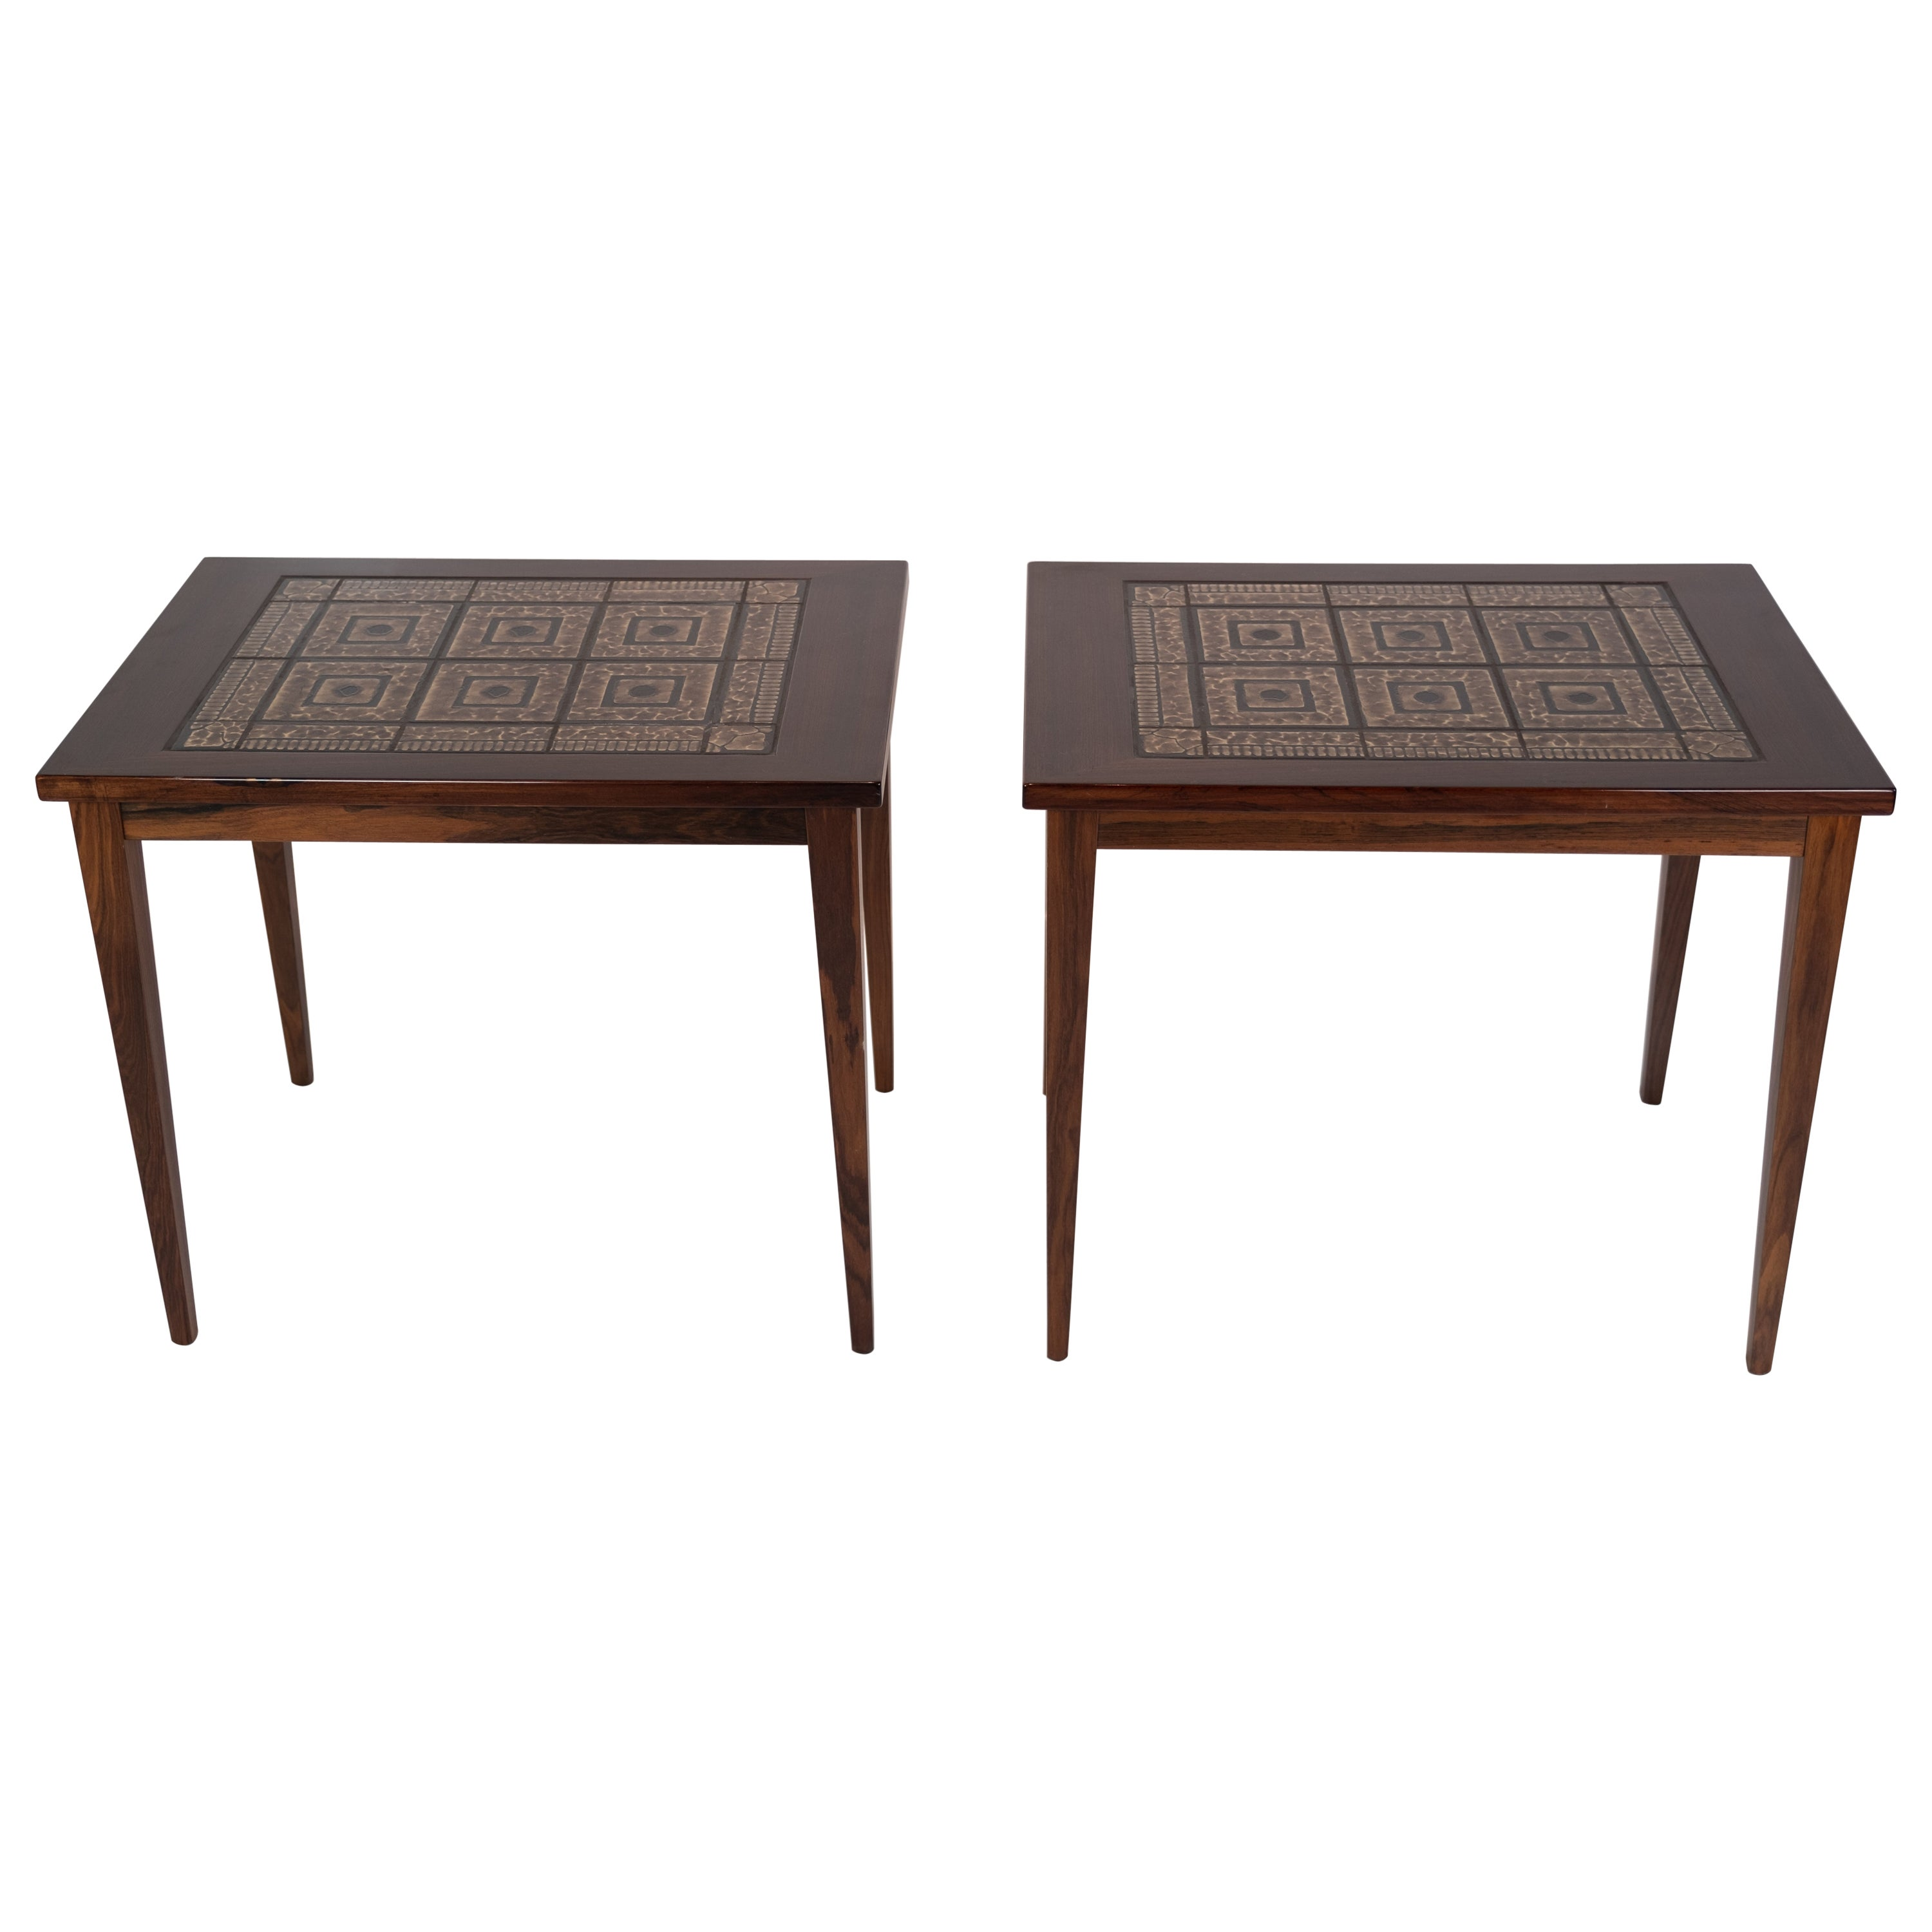 Pair of Bedside Tables in mahogany with Brown Tiles of Danish Design, 1960s